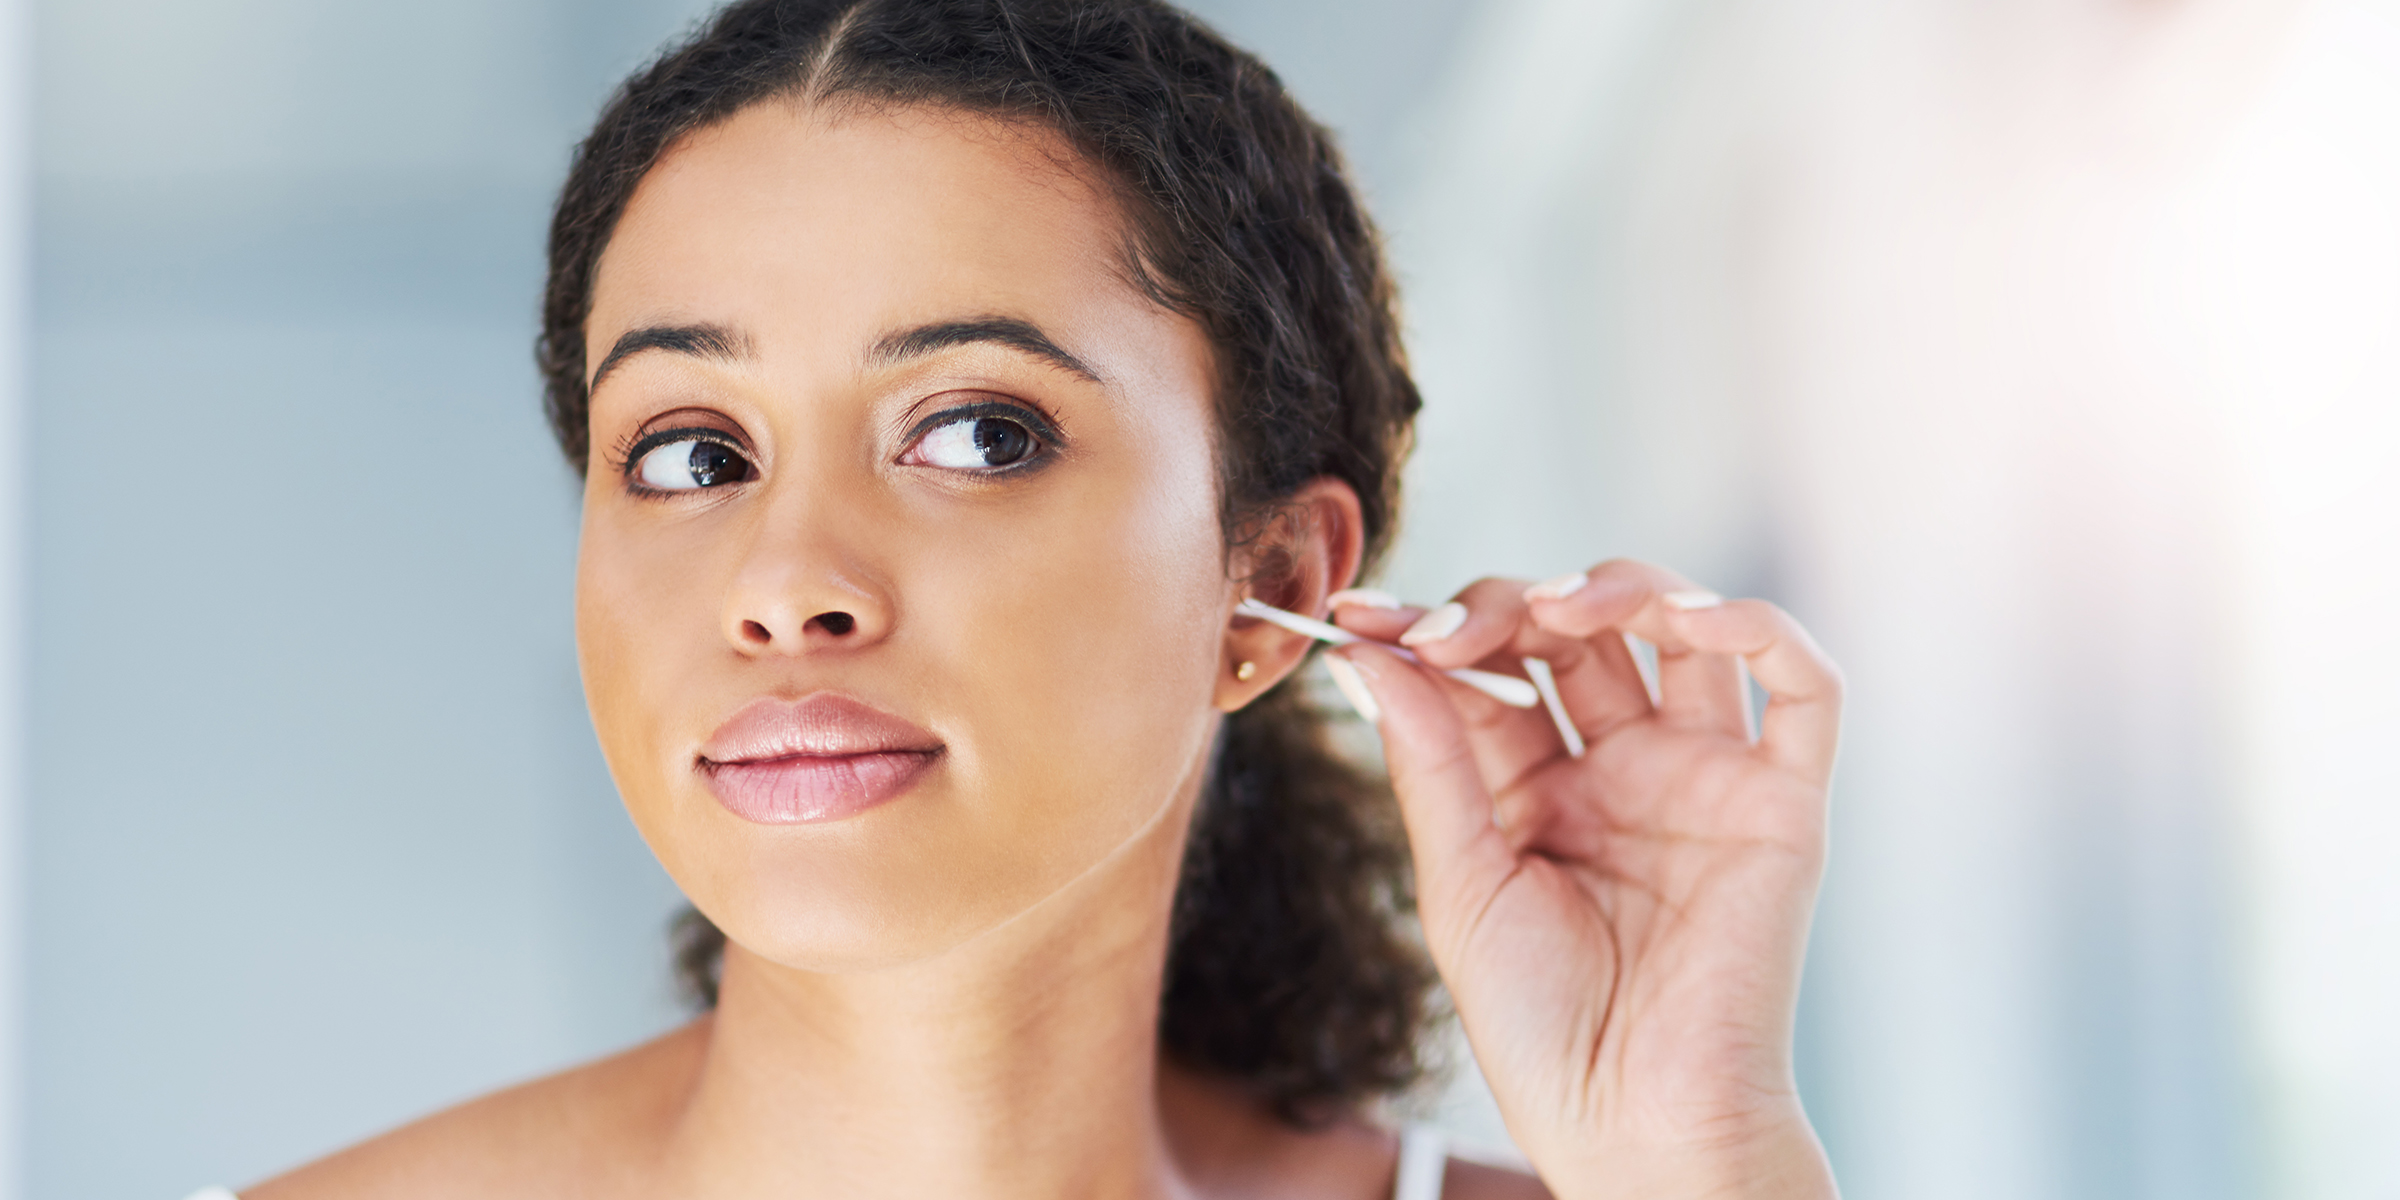 What Are The Different Ways To Take Care Of Your Ears?